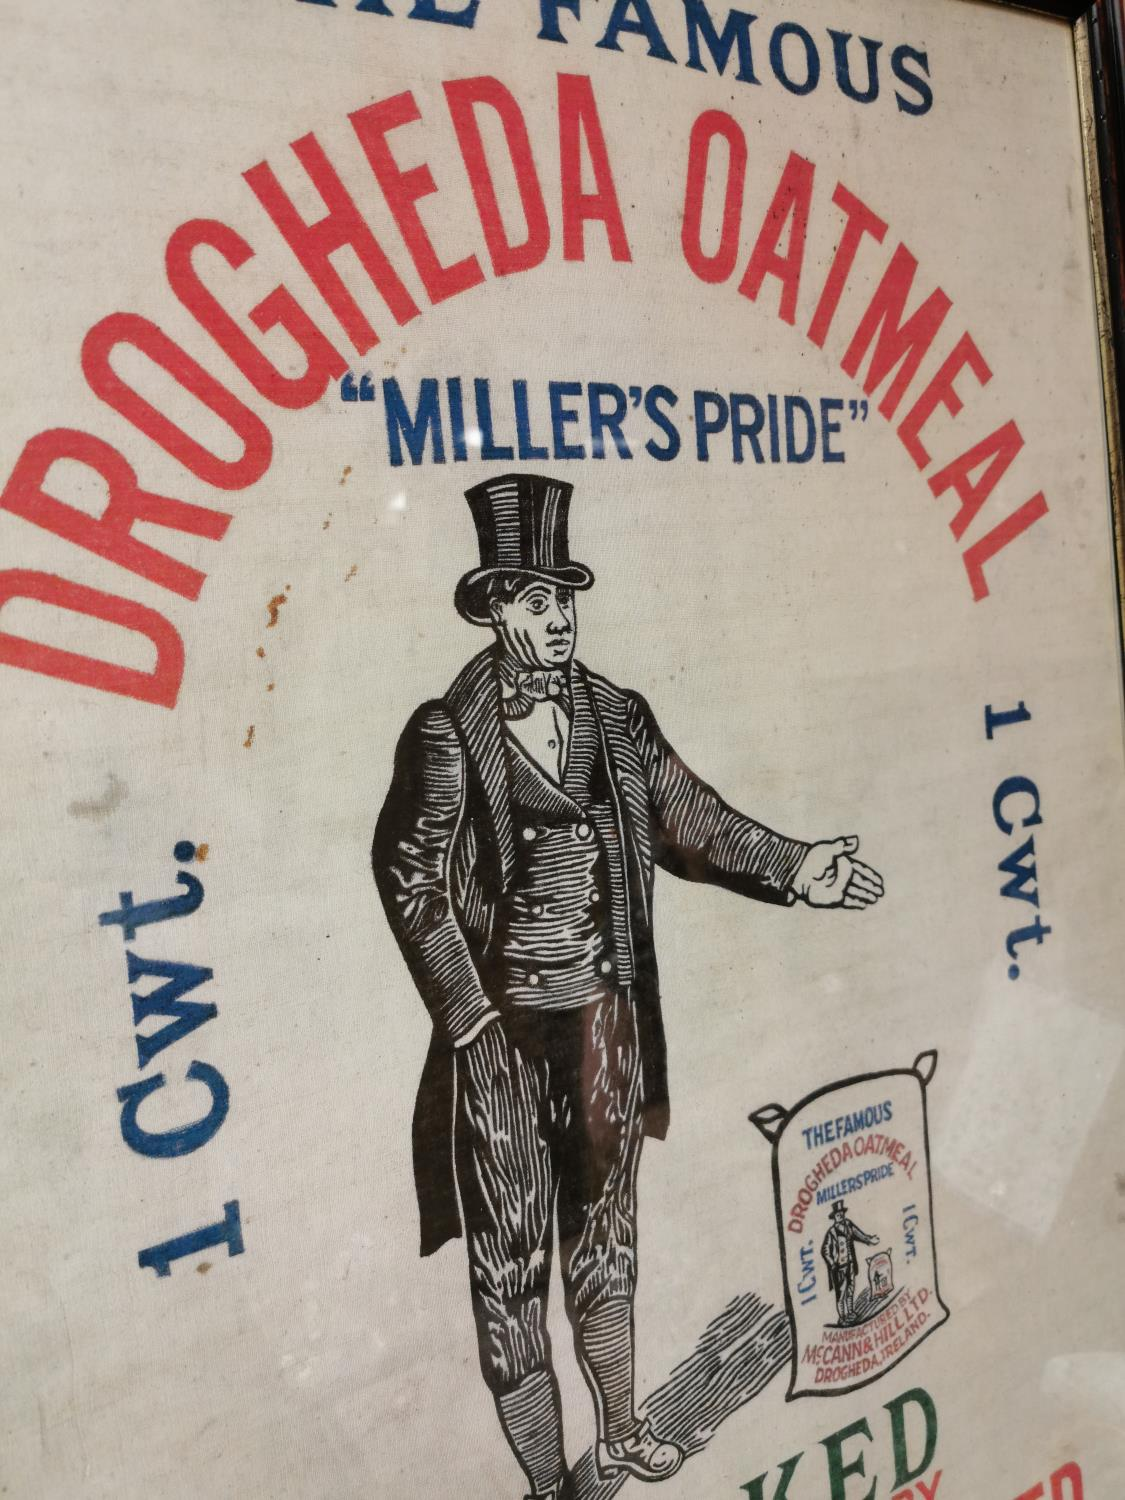 The Famous Drogheda Oatmill advertising cloth. - Image 2 of 2